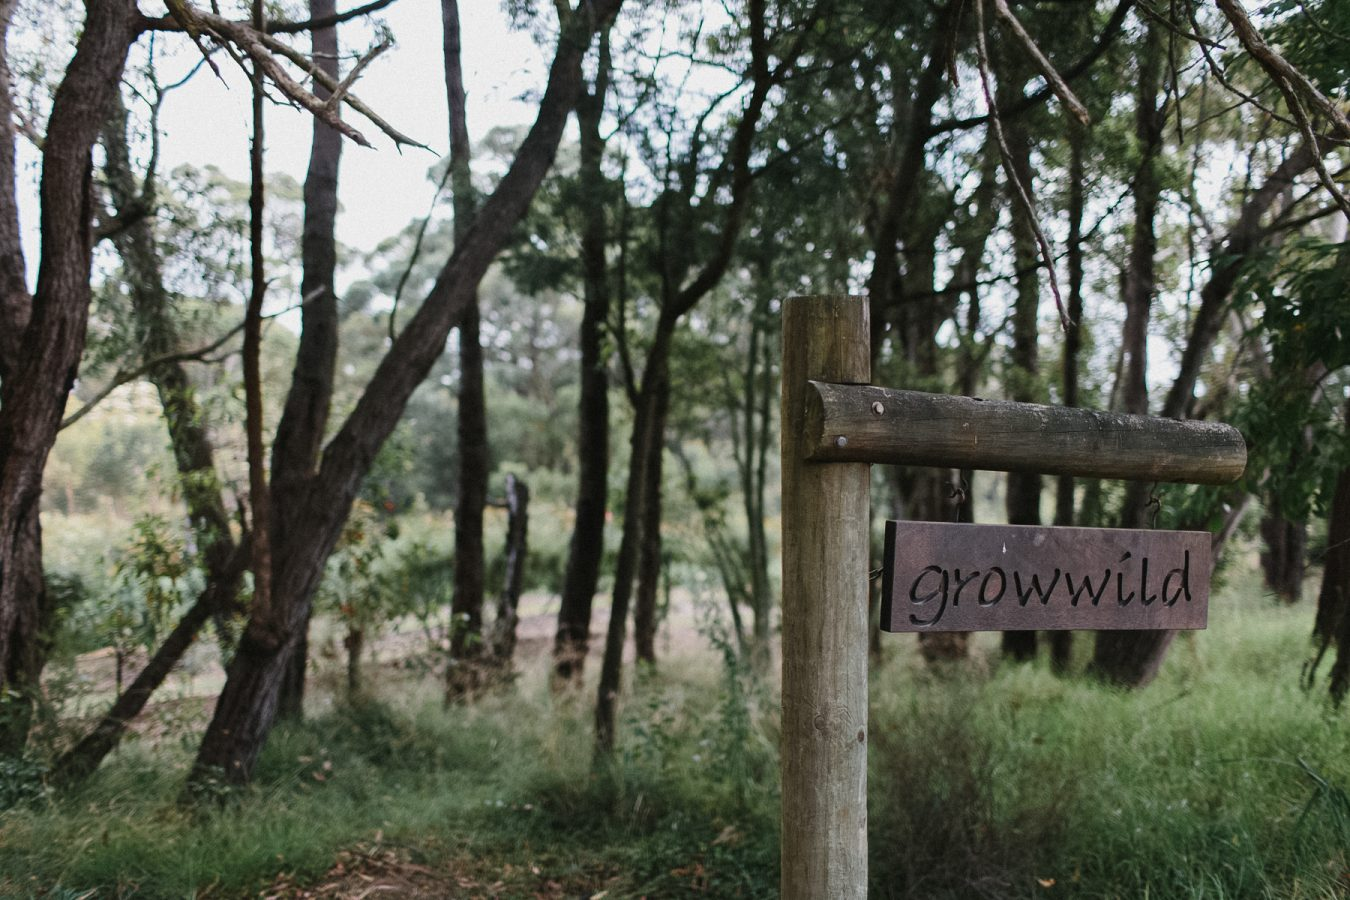 Courtney-Josh-Growwild-Bowral-southernhighlans-Wedding-21